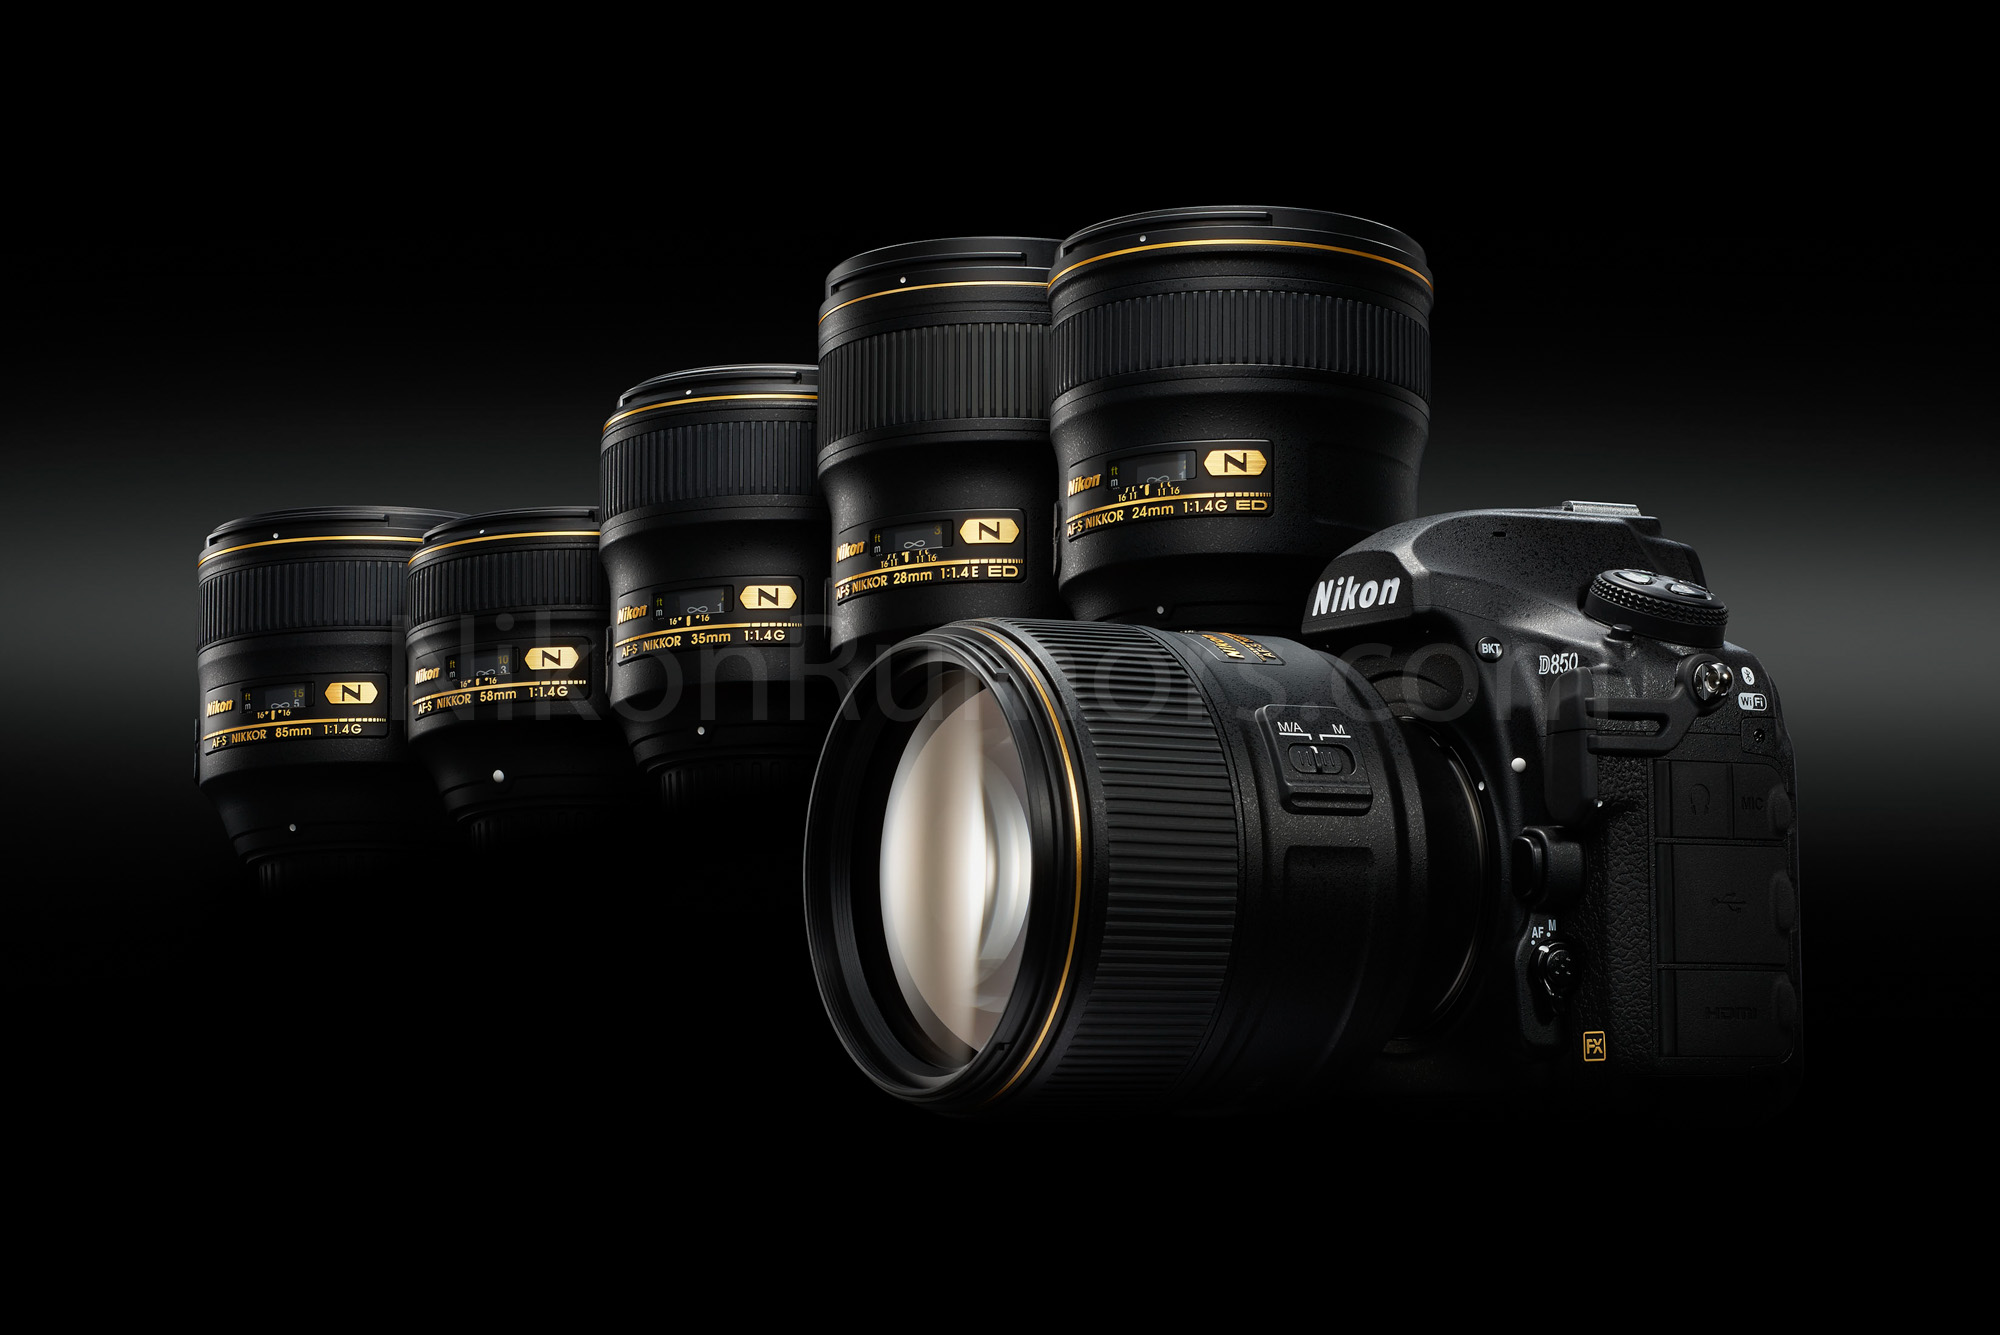 whem will nikon release firmware for cfexpress